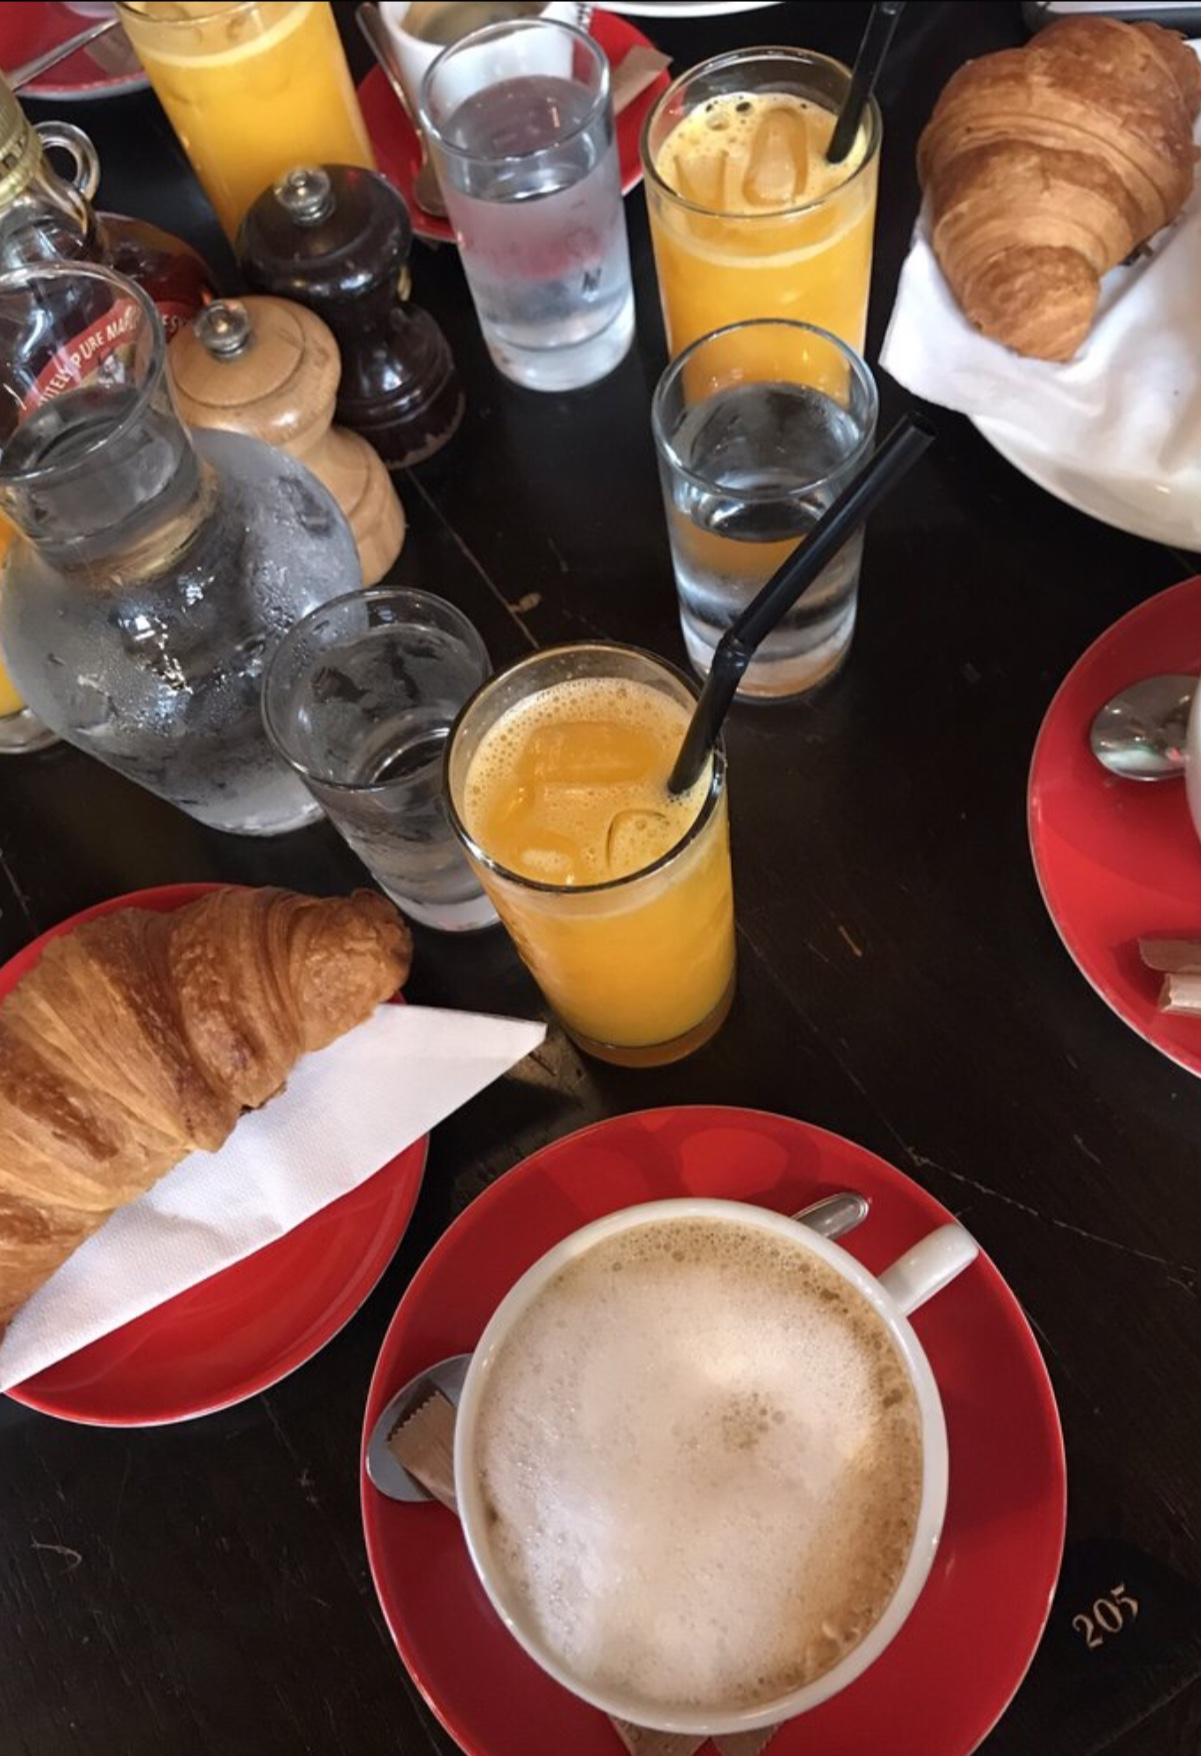 Walking to the Cafe Le Bonaparte, sitting down at a lovely table outside to have un cafe allonge (espresso with water), drawing in a deep breathe and realizing you are in Paris!